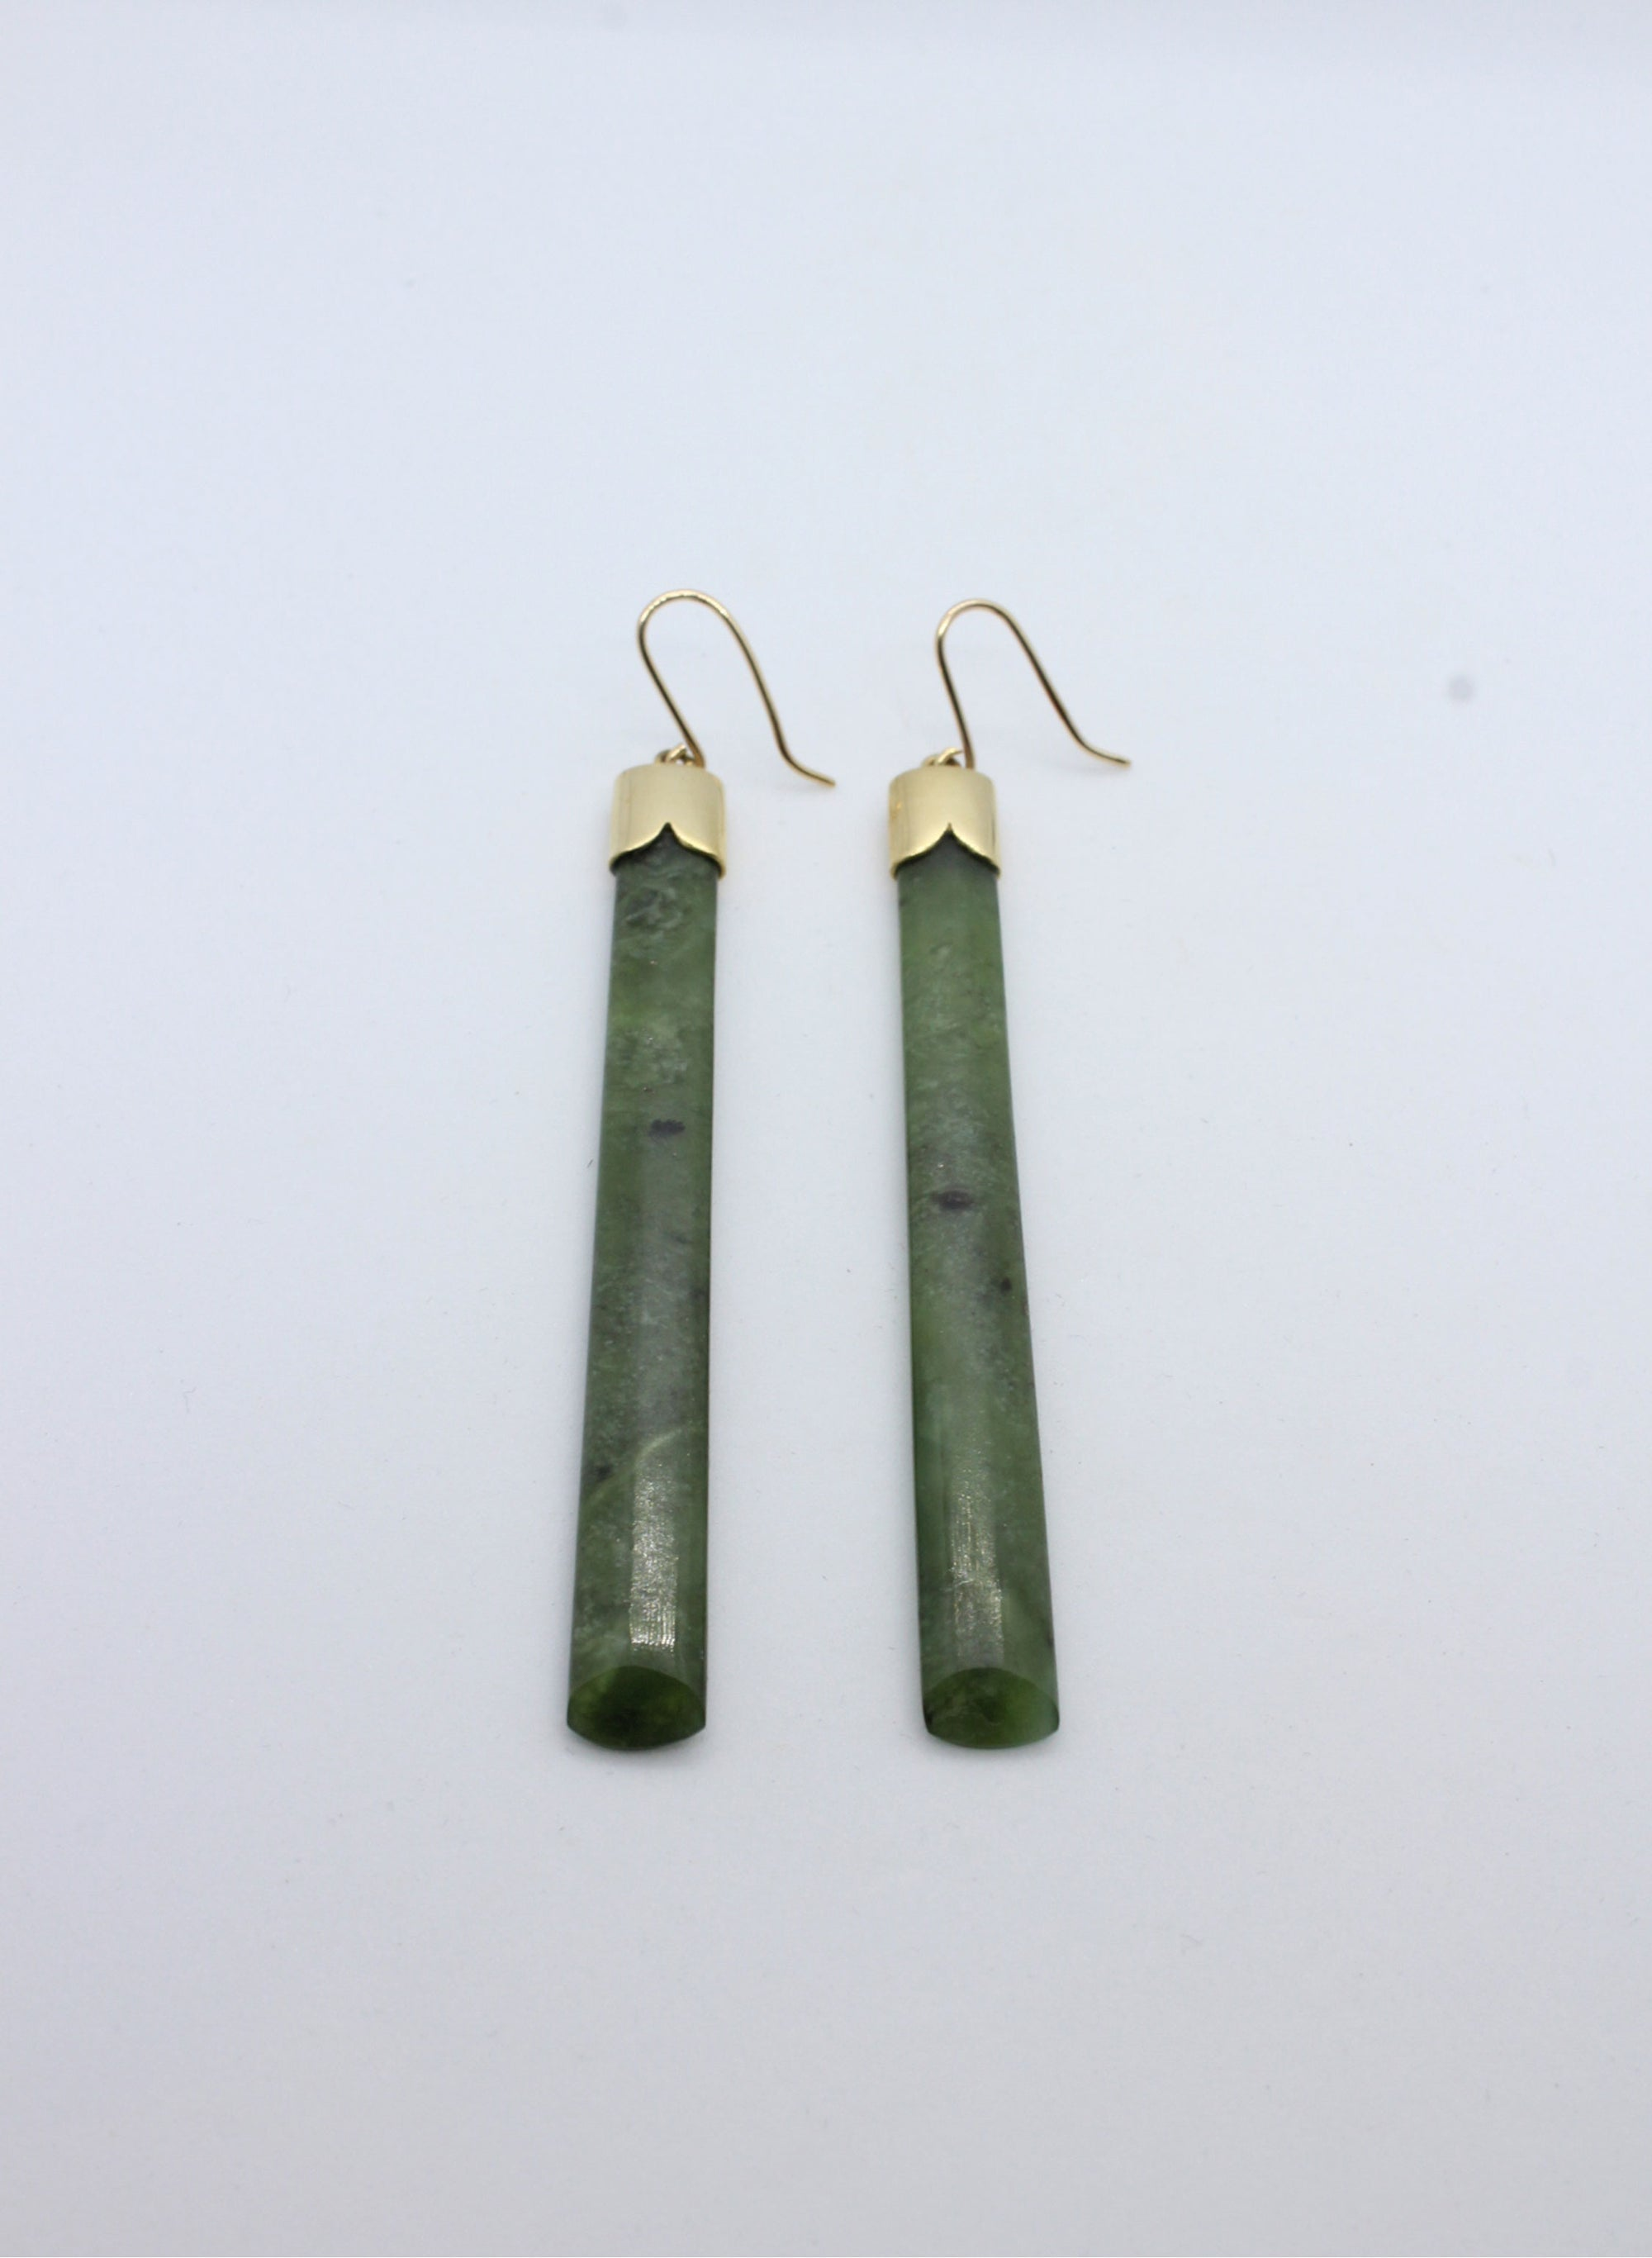 Pounamu Earrings with Gold caps and square base